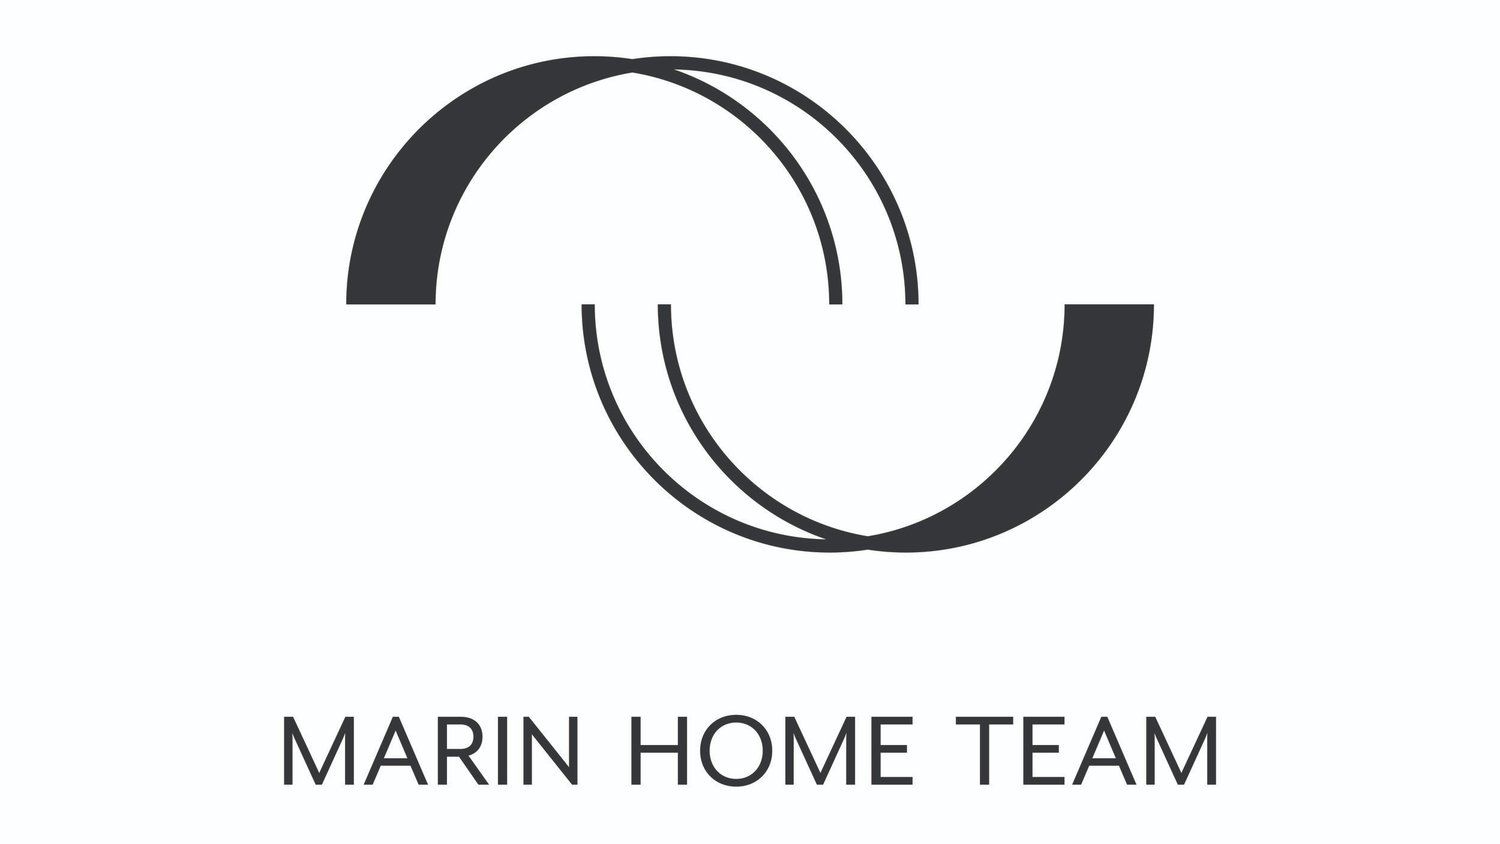 The Marin Home Team